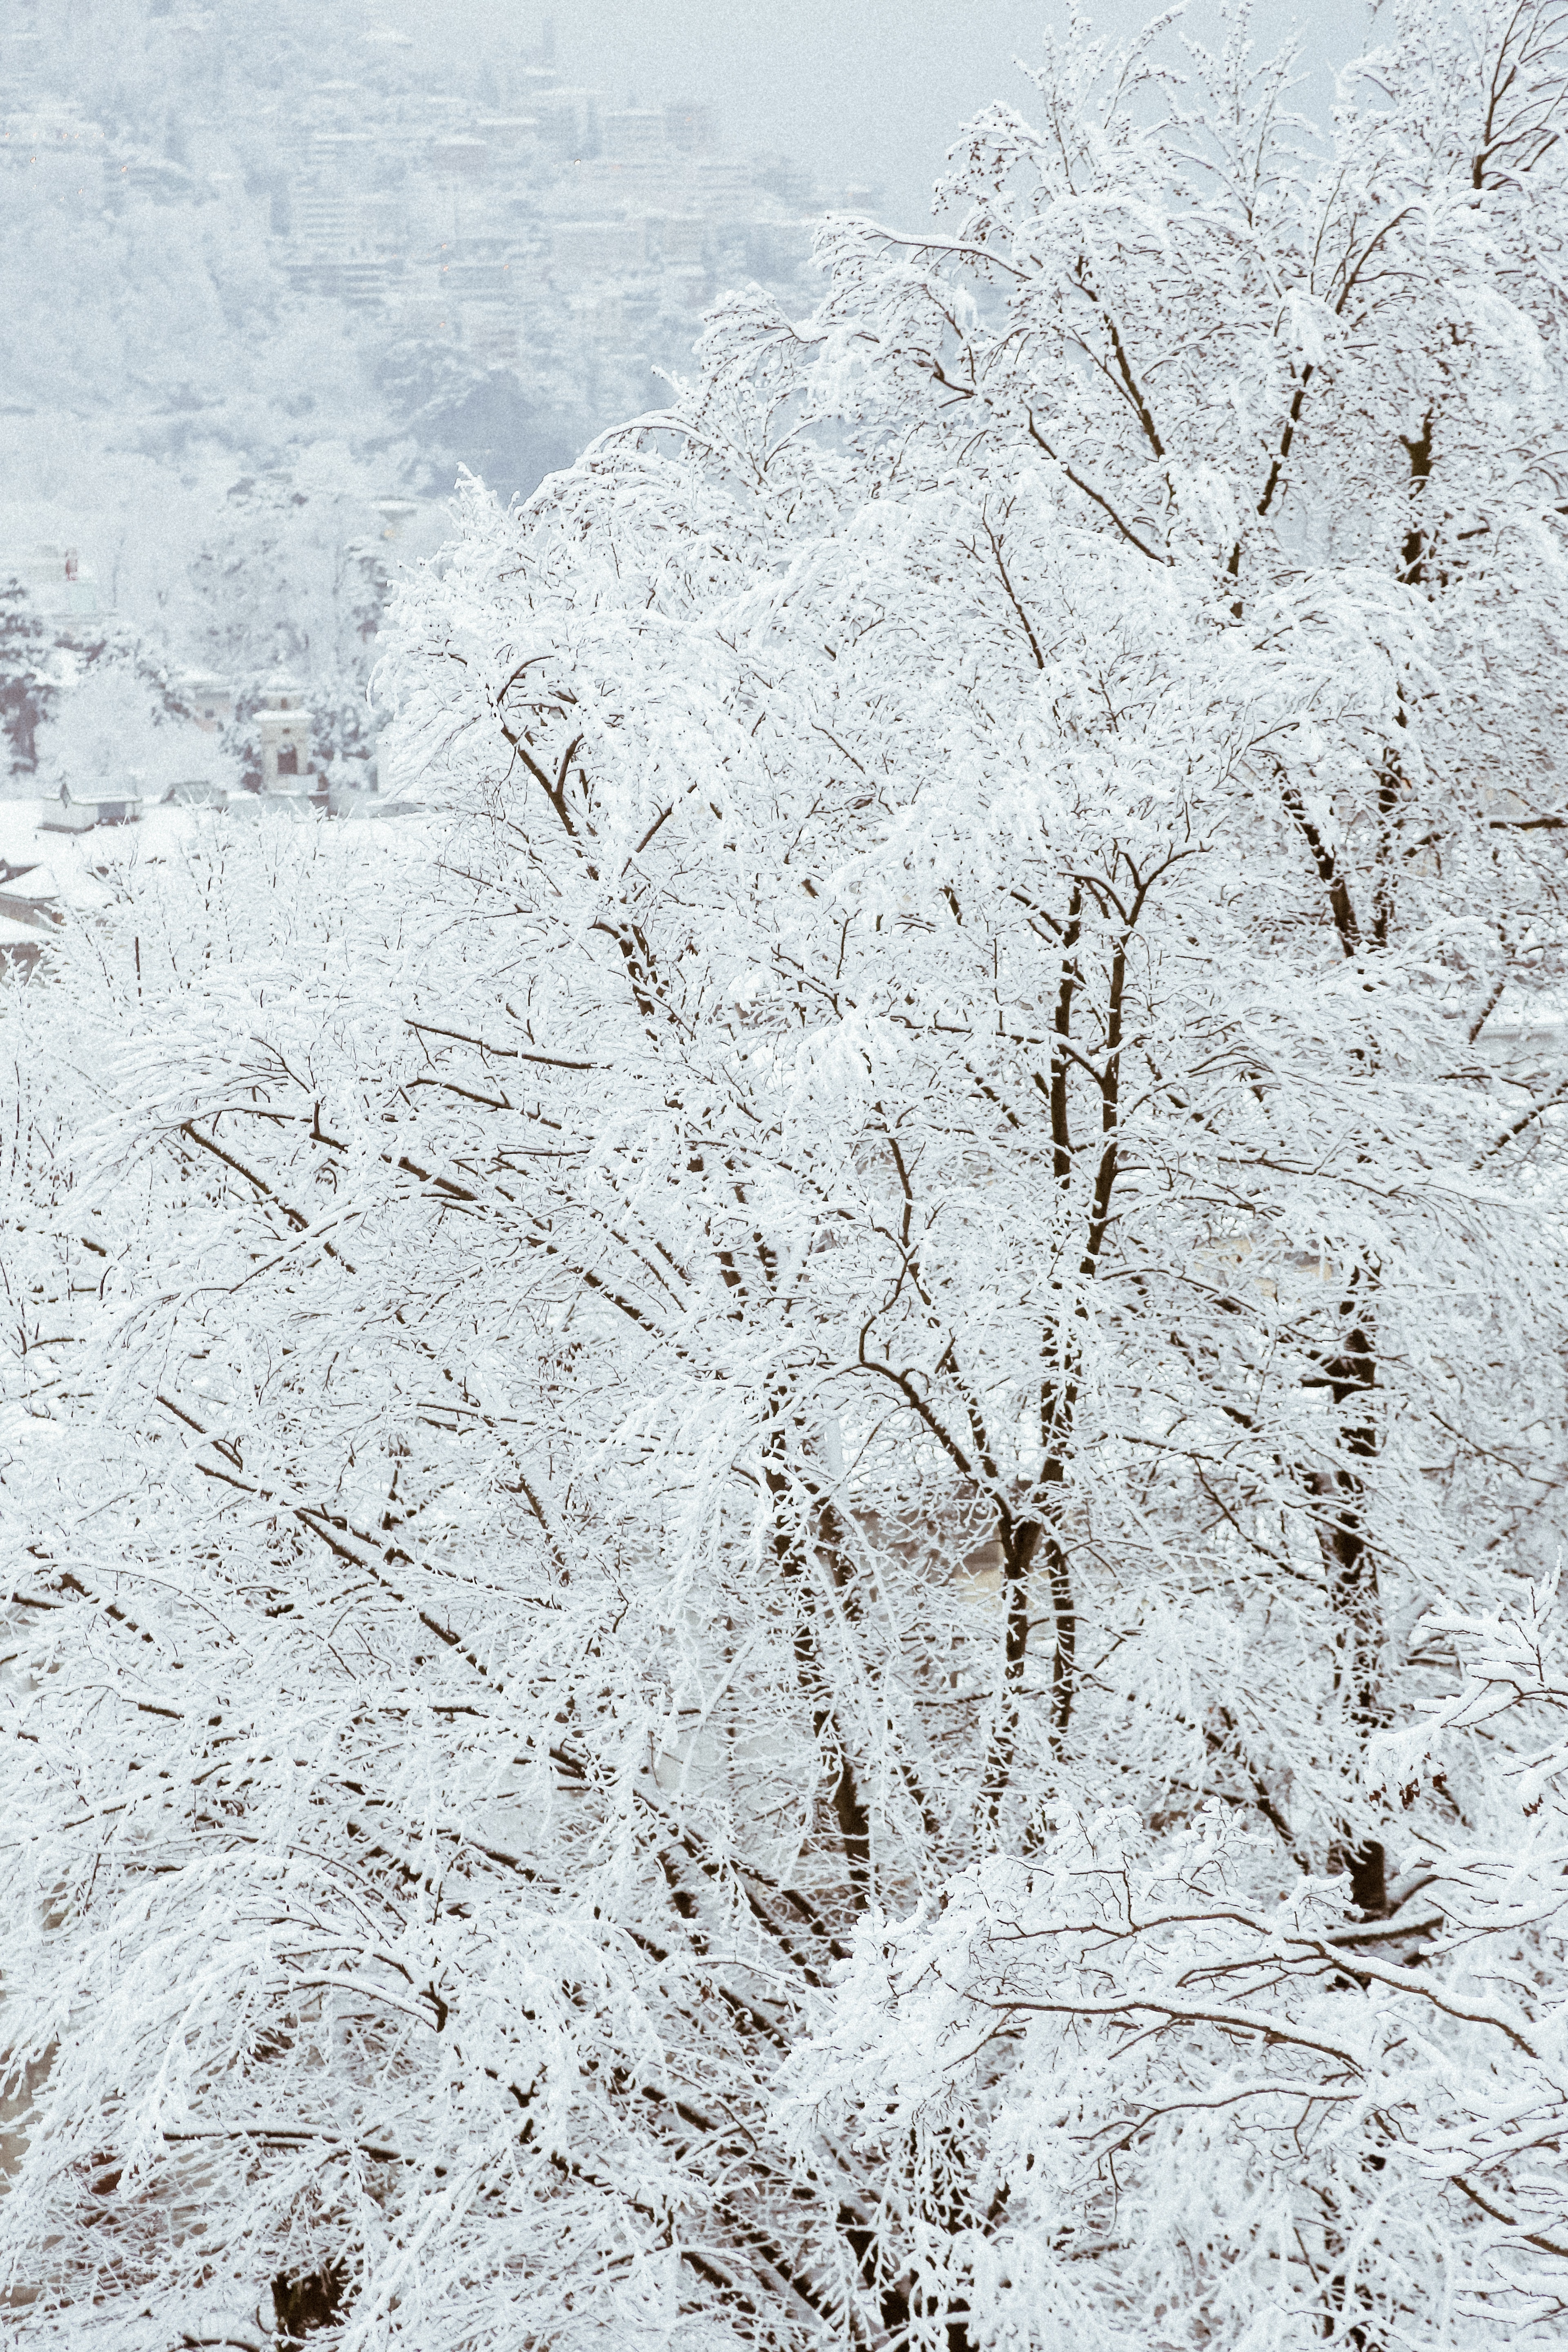 Snow Covered Trees, Outdoors, Wood, Winter, White, HQ Photo